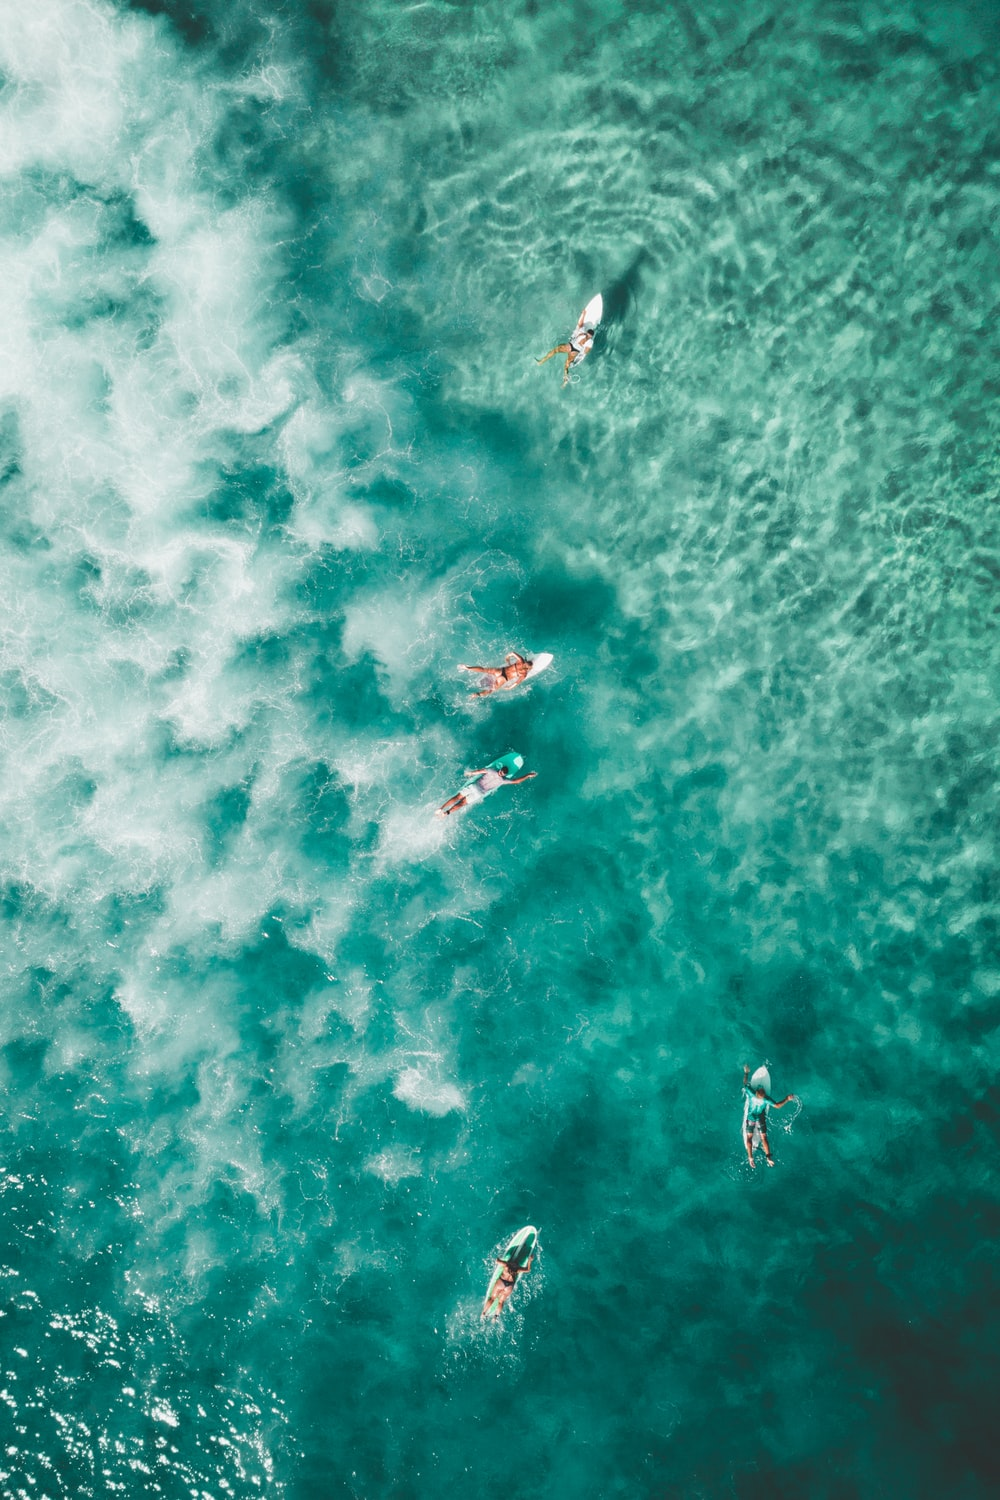 bird's eye photography of people surfing